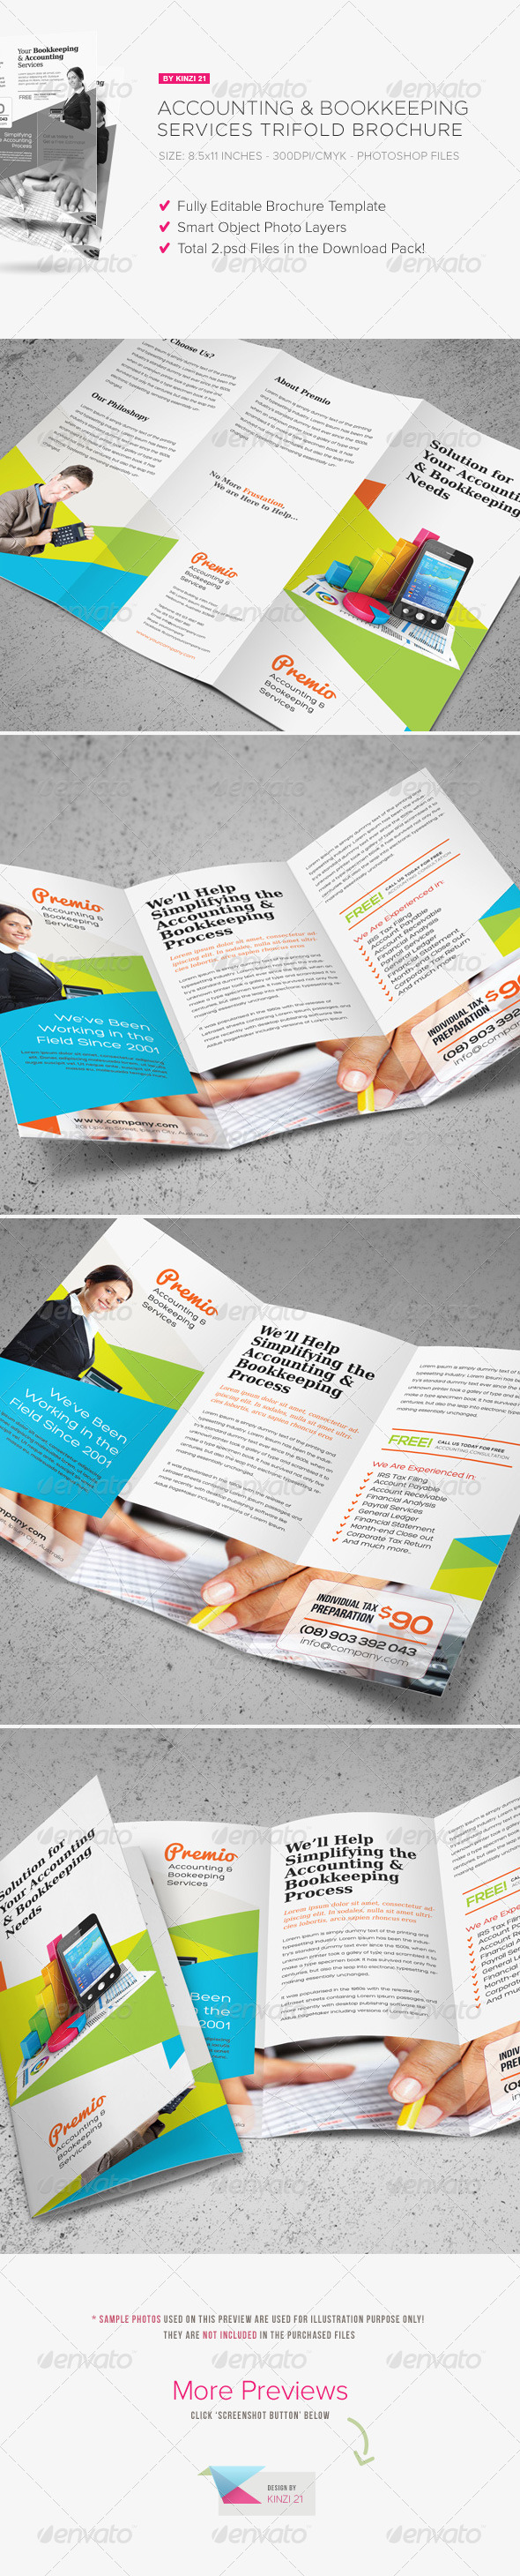 Accounting & Bookkeeping Services Trifold Brochure - Corporate Brochures